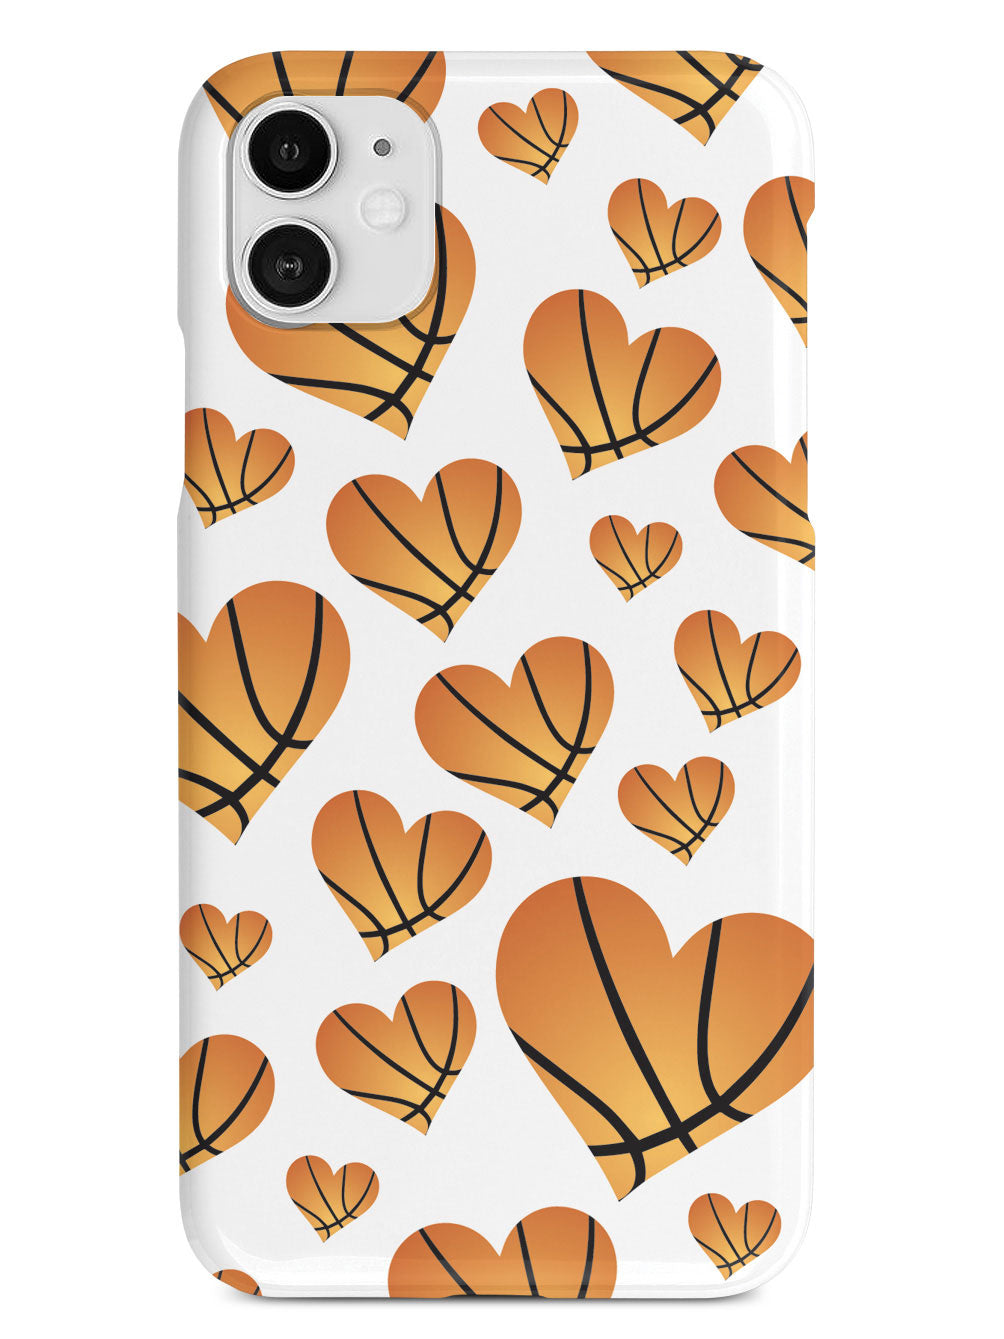 Basketball Heart Pattern Case